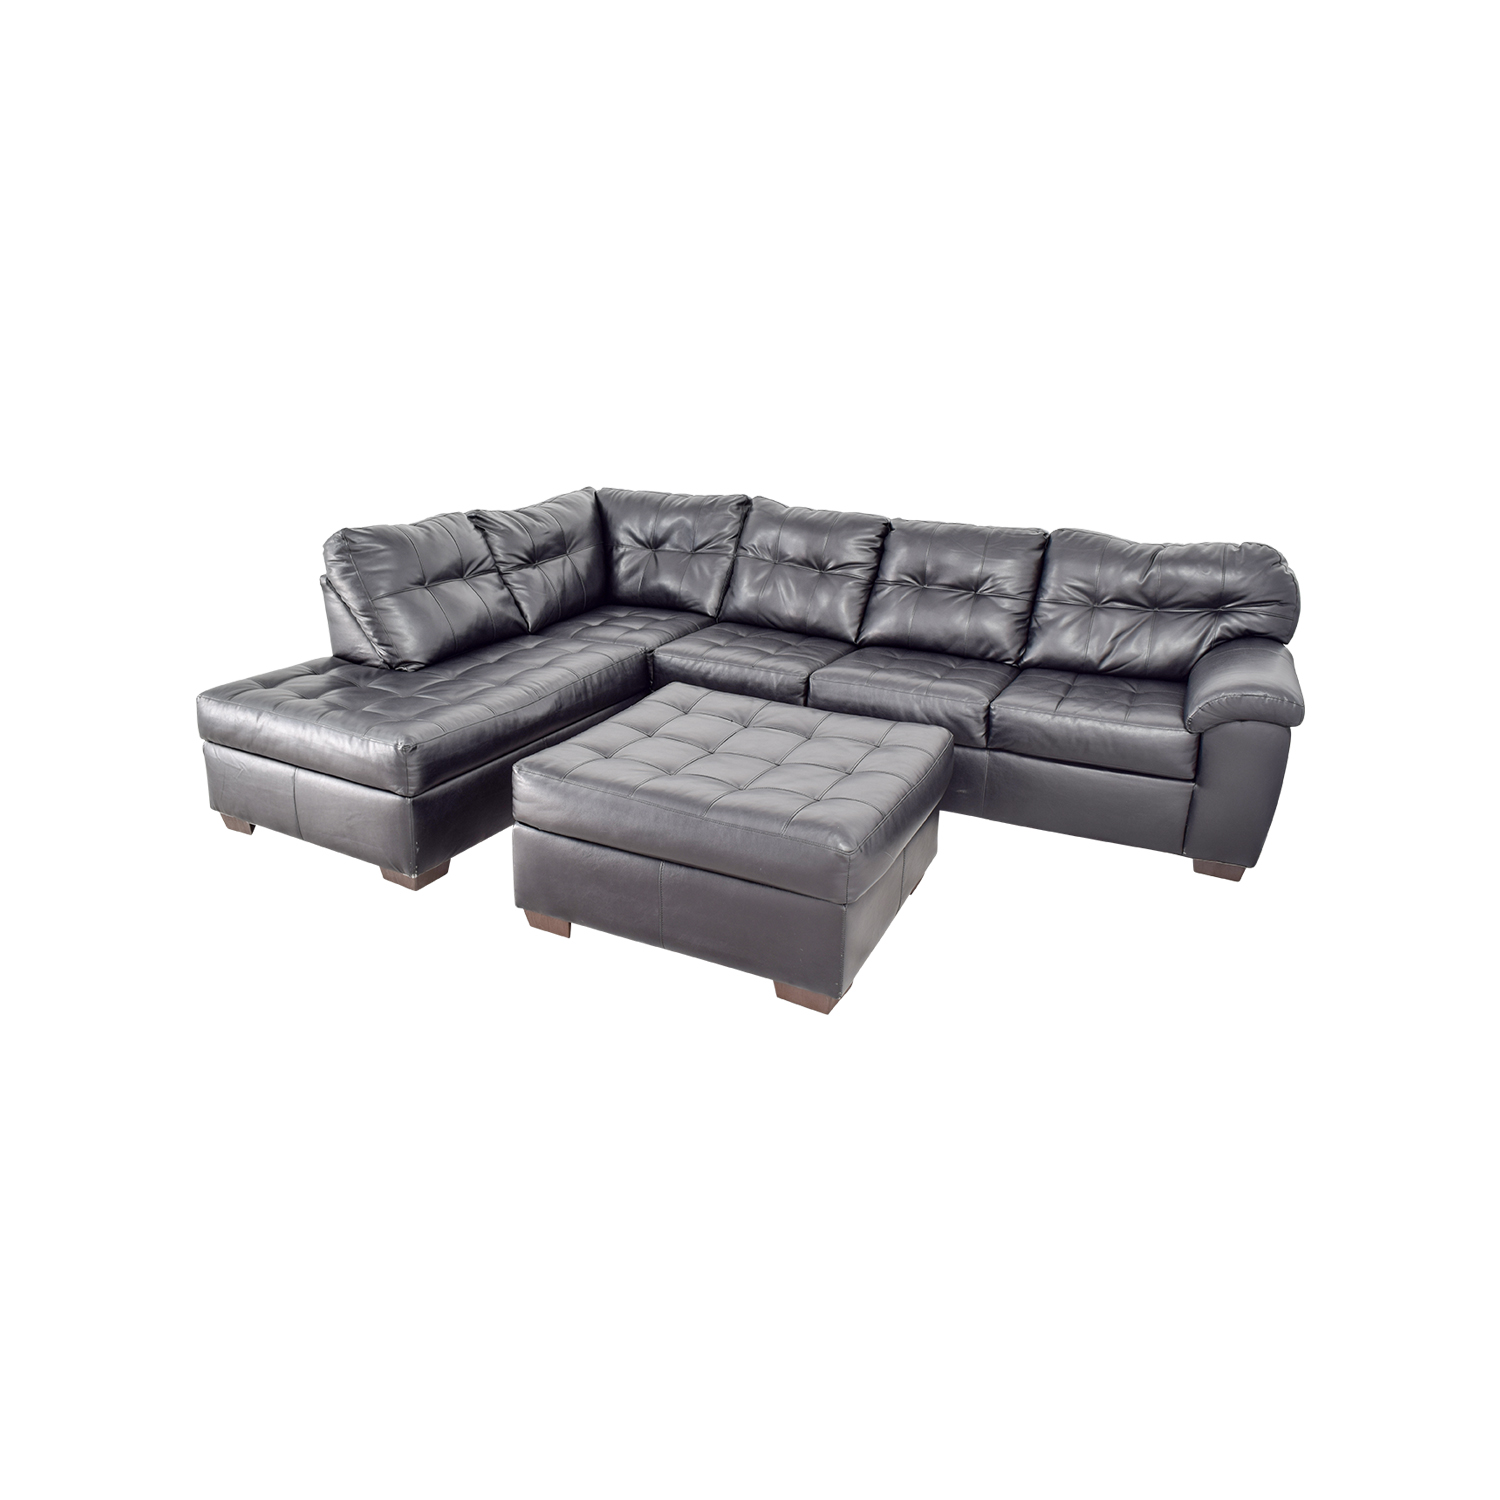 Super 81 Off Black Leather Tufted Sectional Sofa And Ottoman Sofas Frankydiablos Diy Chair Ideas Frankydiabloscom